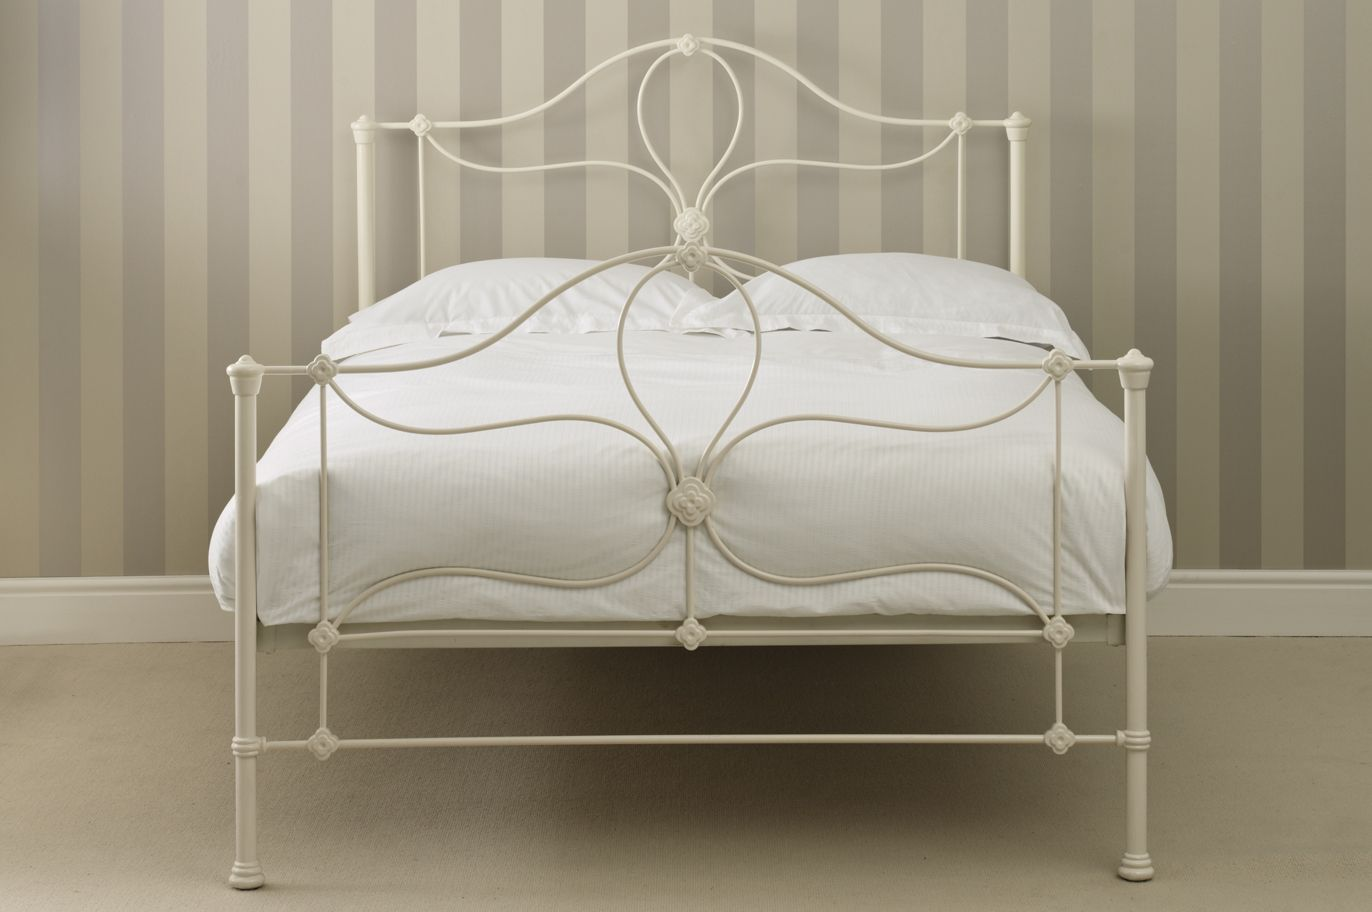 Petula Metal Bed Frame In Cream With Curves Scrolls From Laura